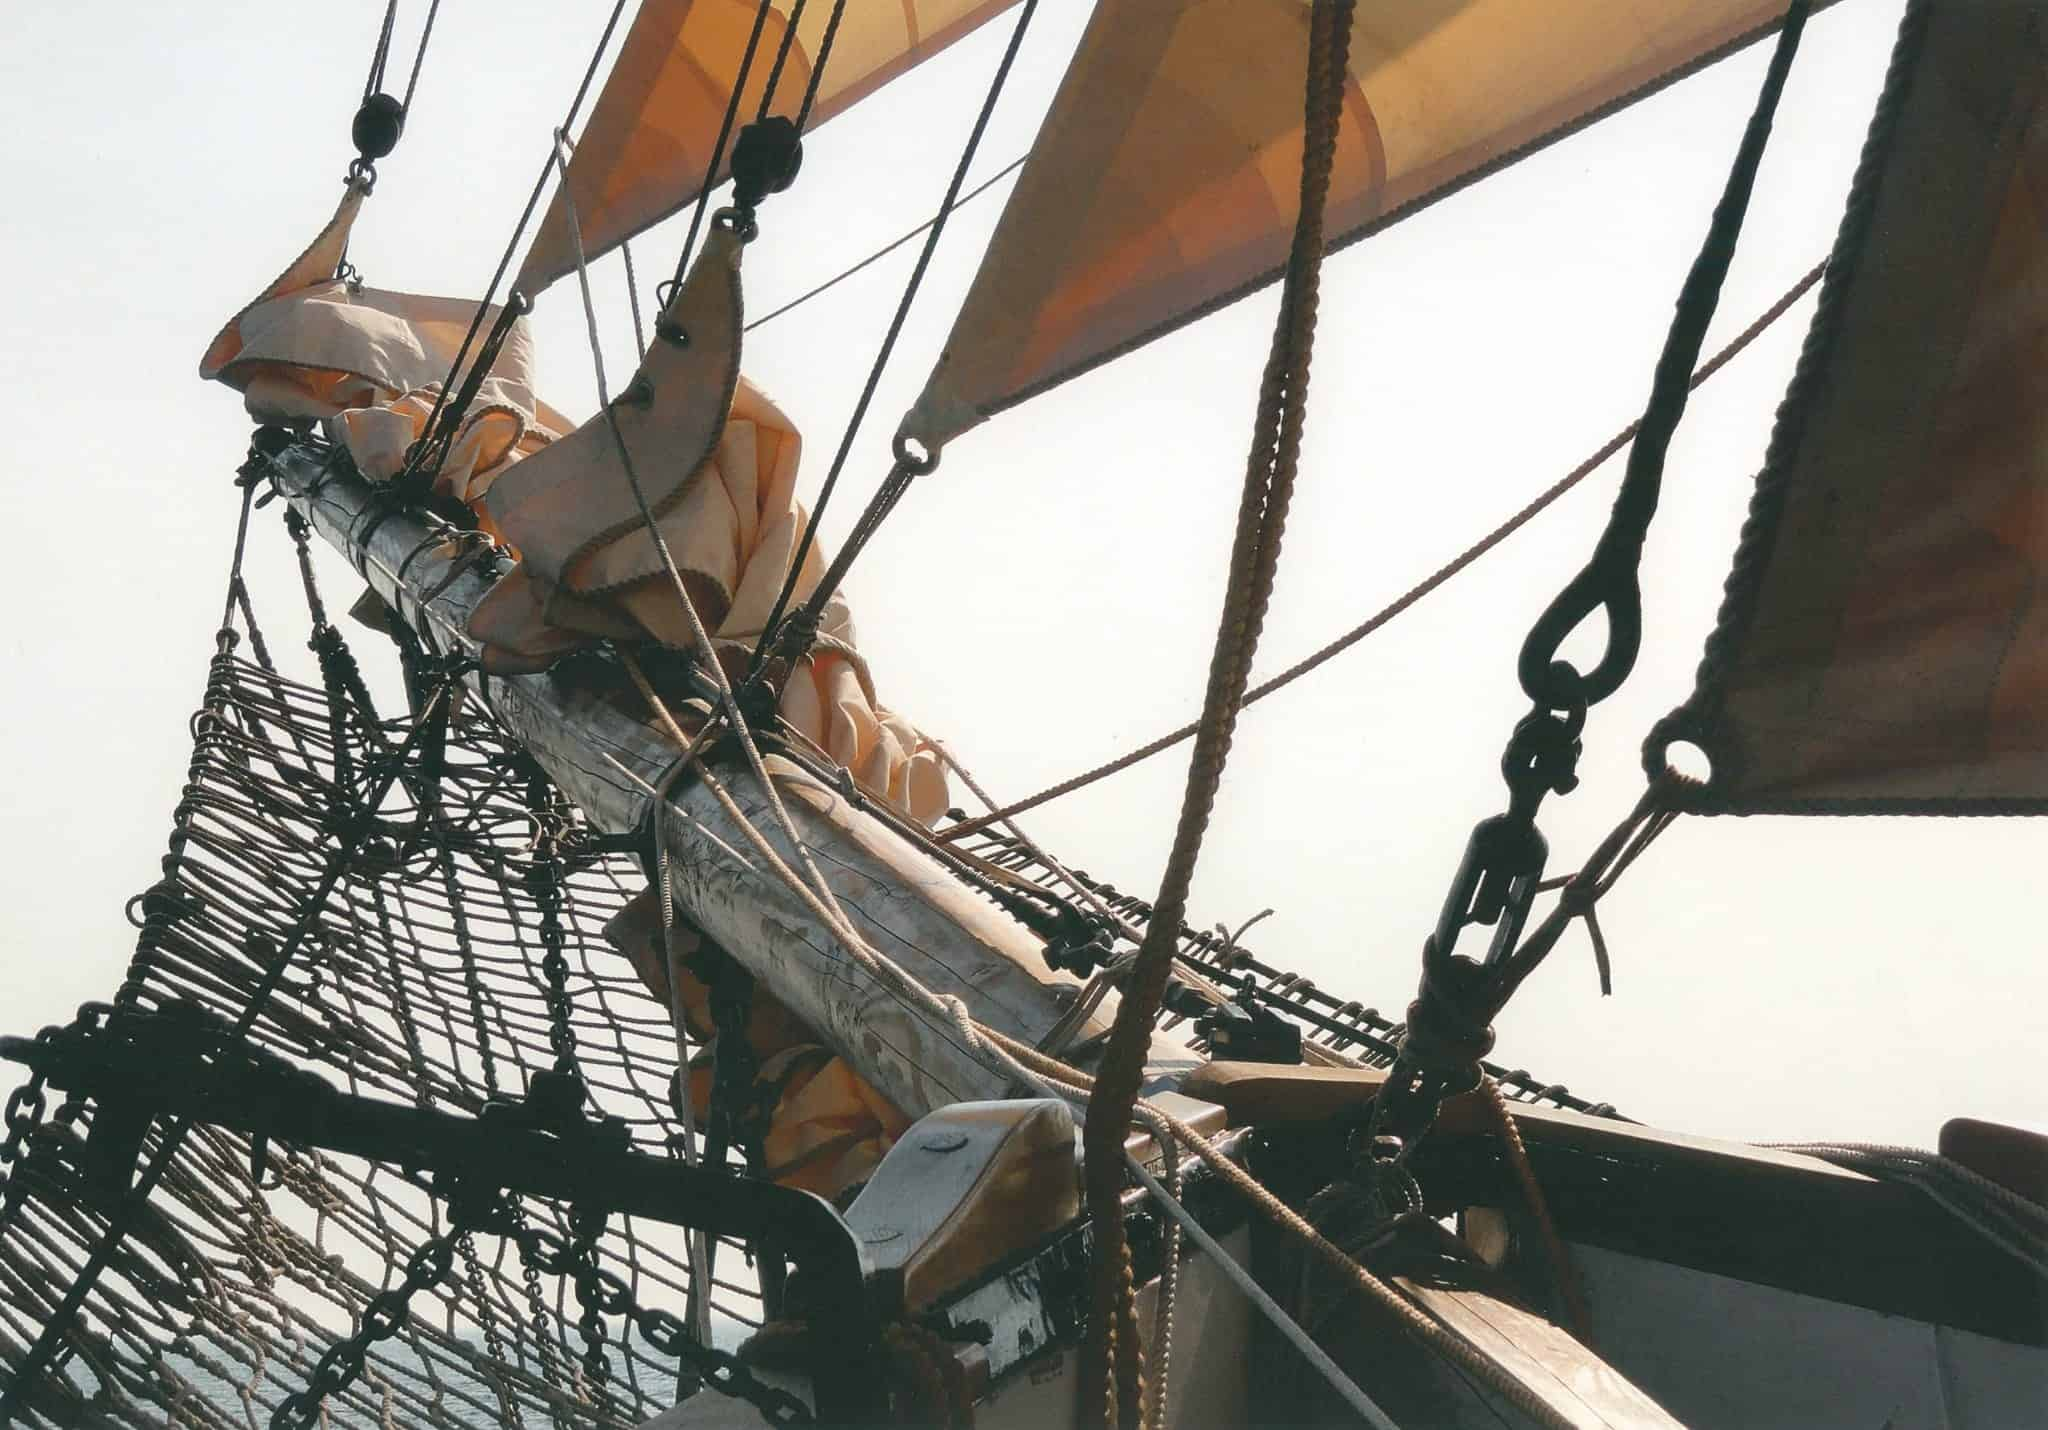 The Bolt Rope located in the headsail